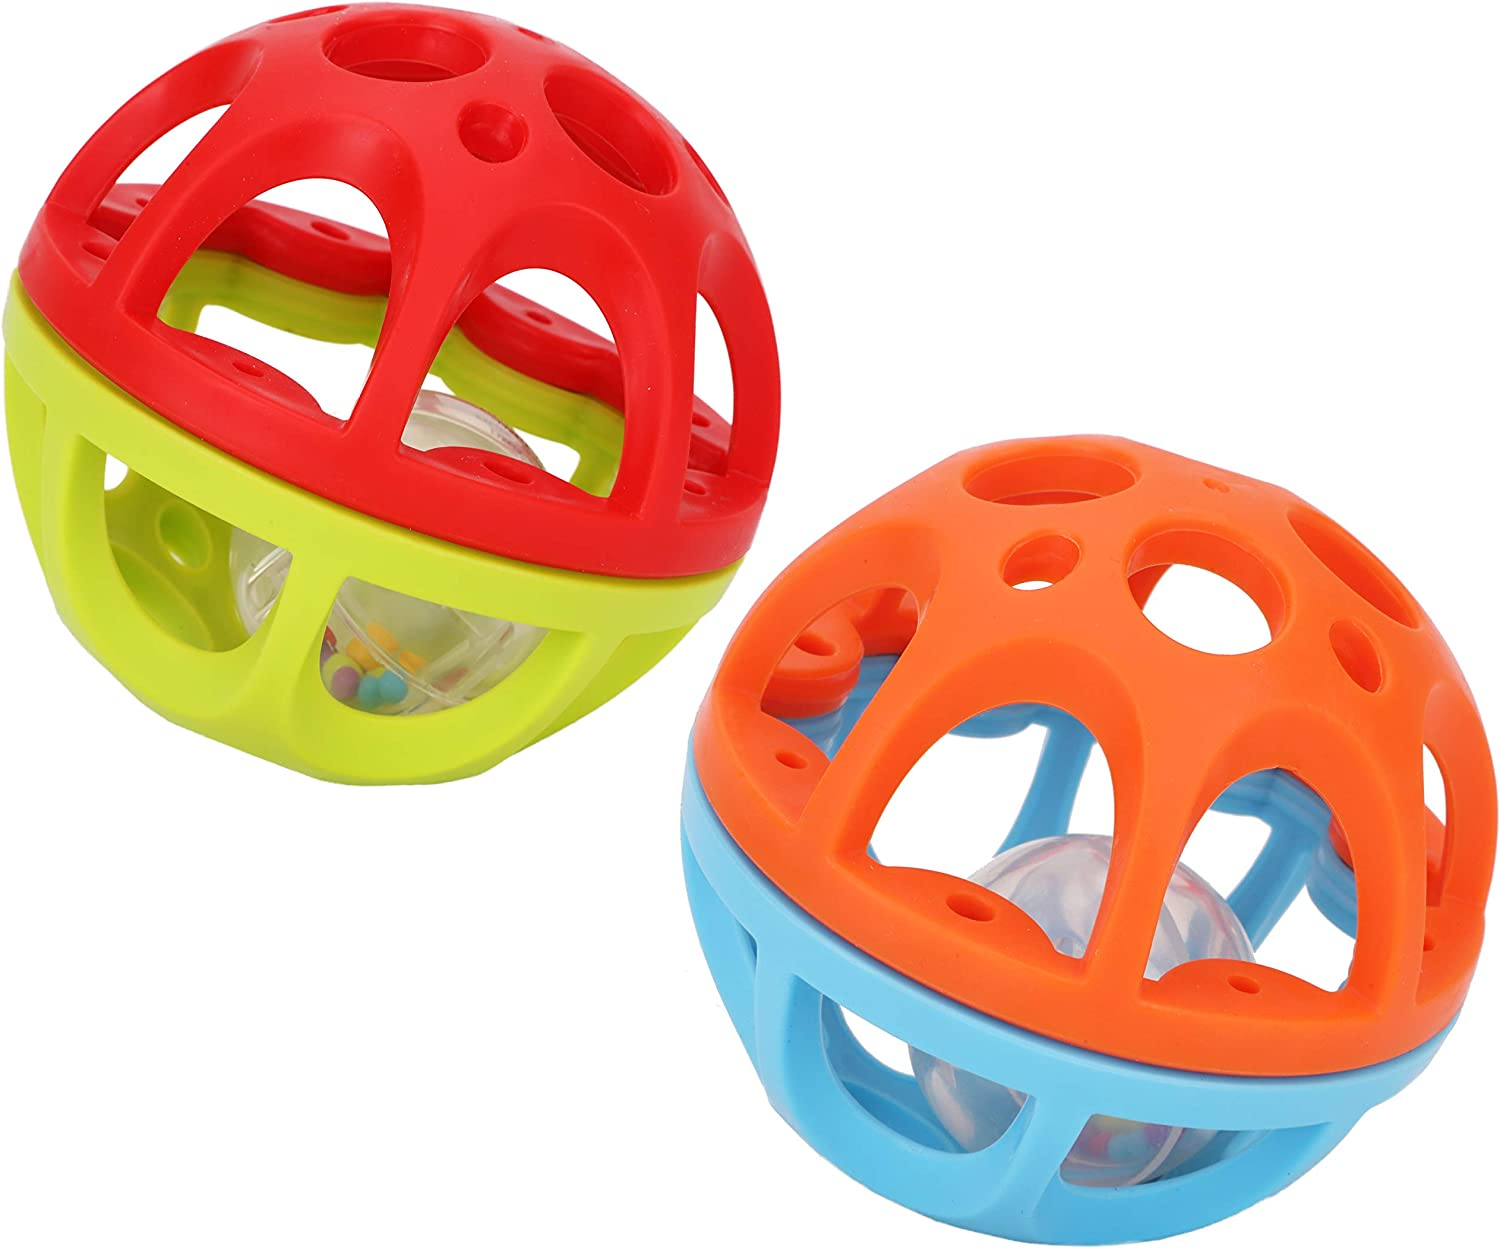 Toyland 10.5cm Bendy n Roll Shake Rattle Ball Courier shipping free shipping - Mail order Sensor